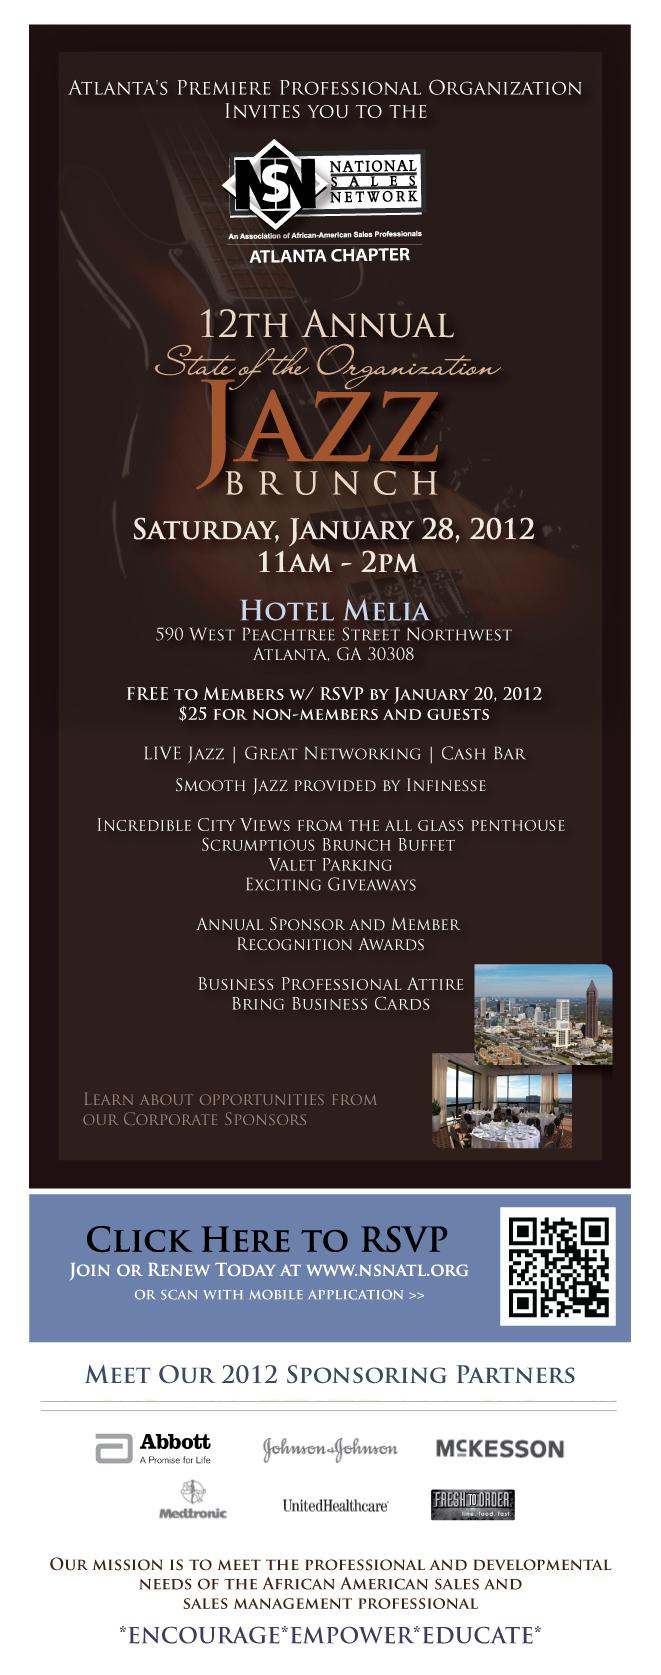 NSN Atlanta 12th Annual State of the Organization Jazz Brunch | Saturday, January 28, 2012 | Hotel Melia | Limited Tickets Available